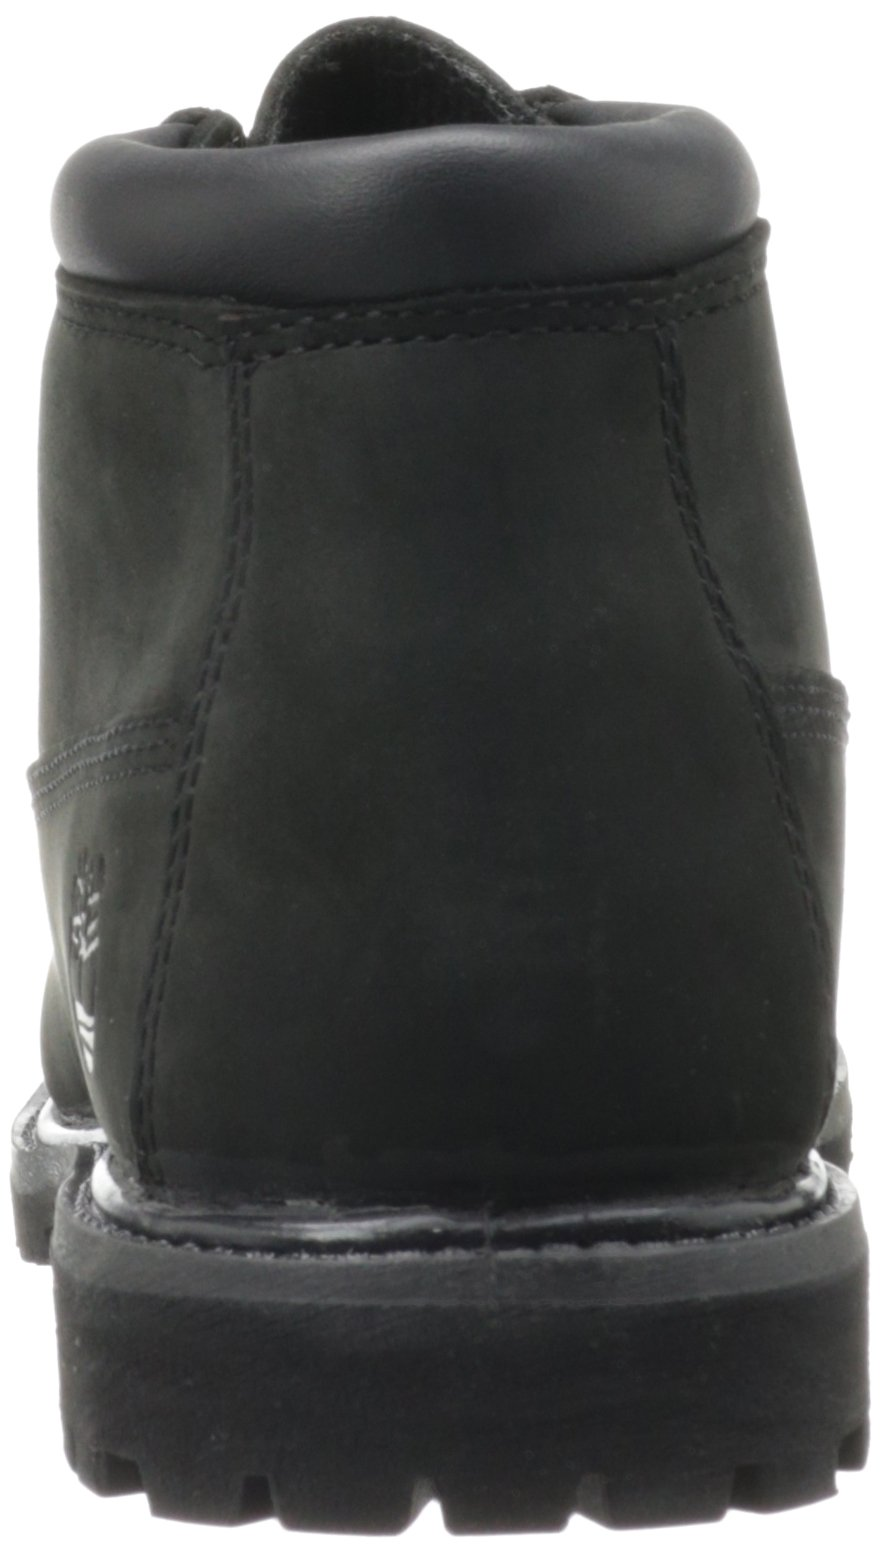 Timberland Women's Nellie Double WP Ankle Boot,Black,6 M US by Timberland (Image #2)